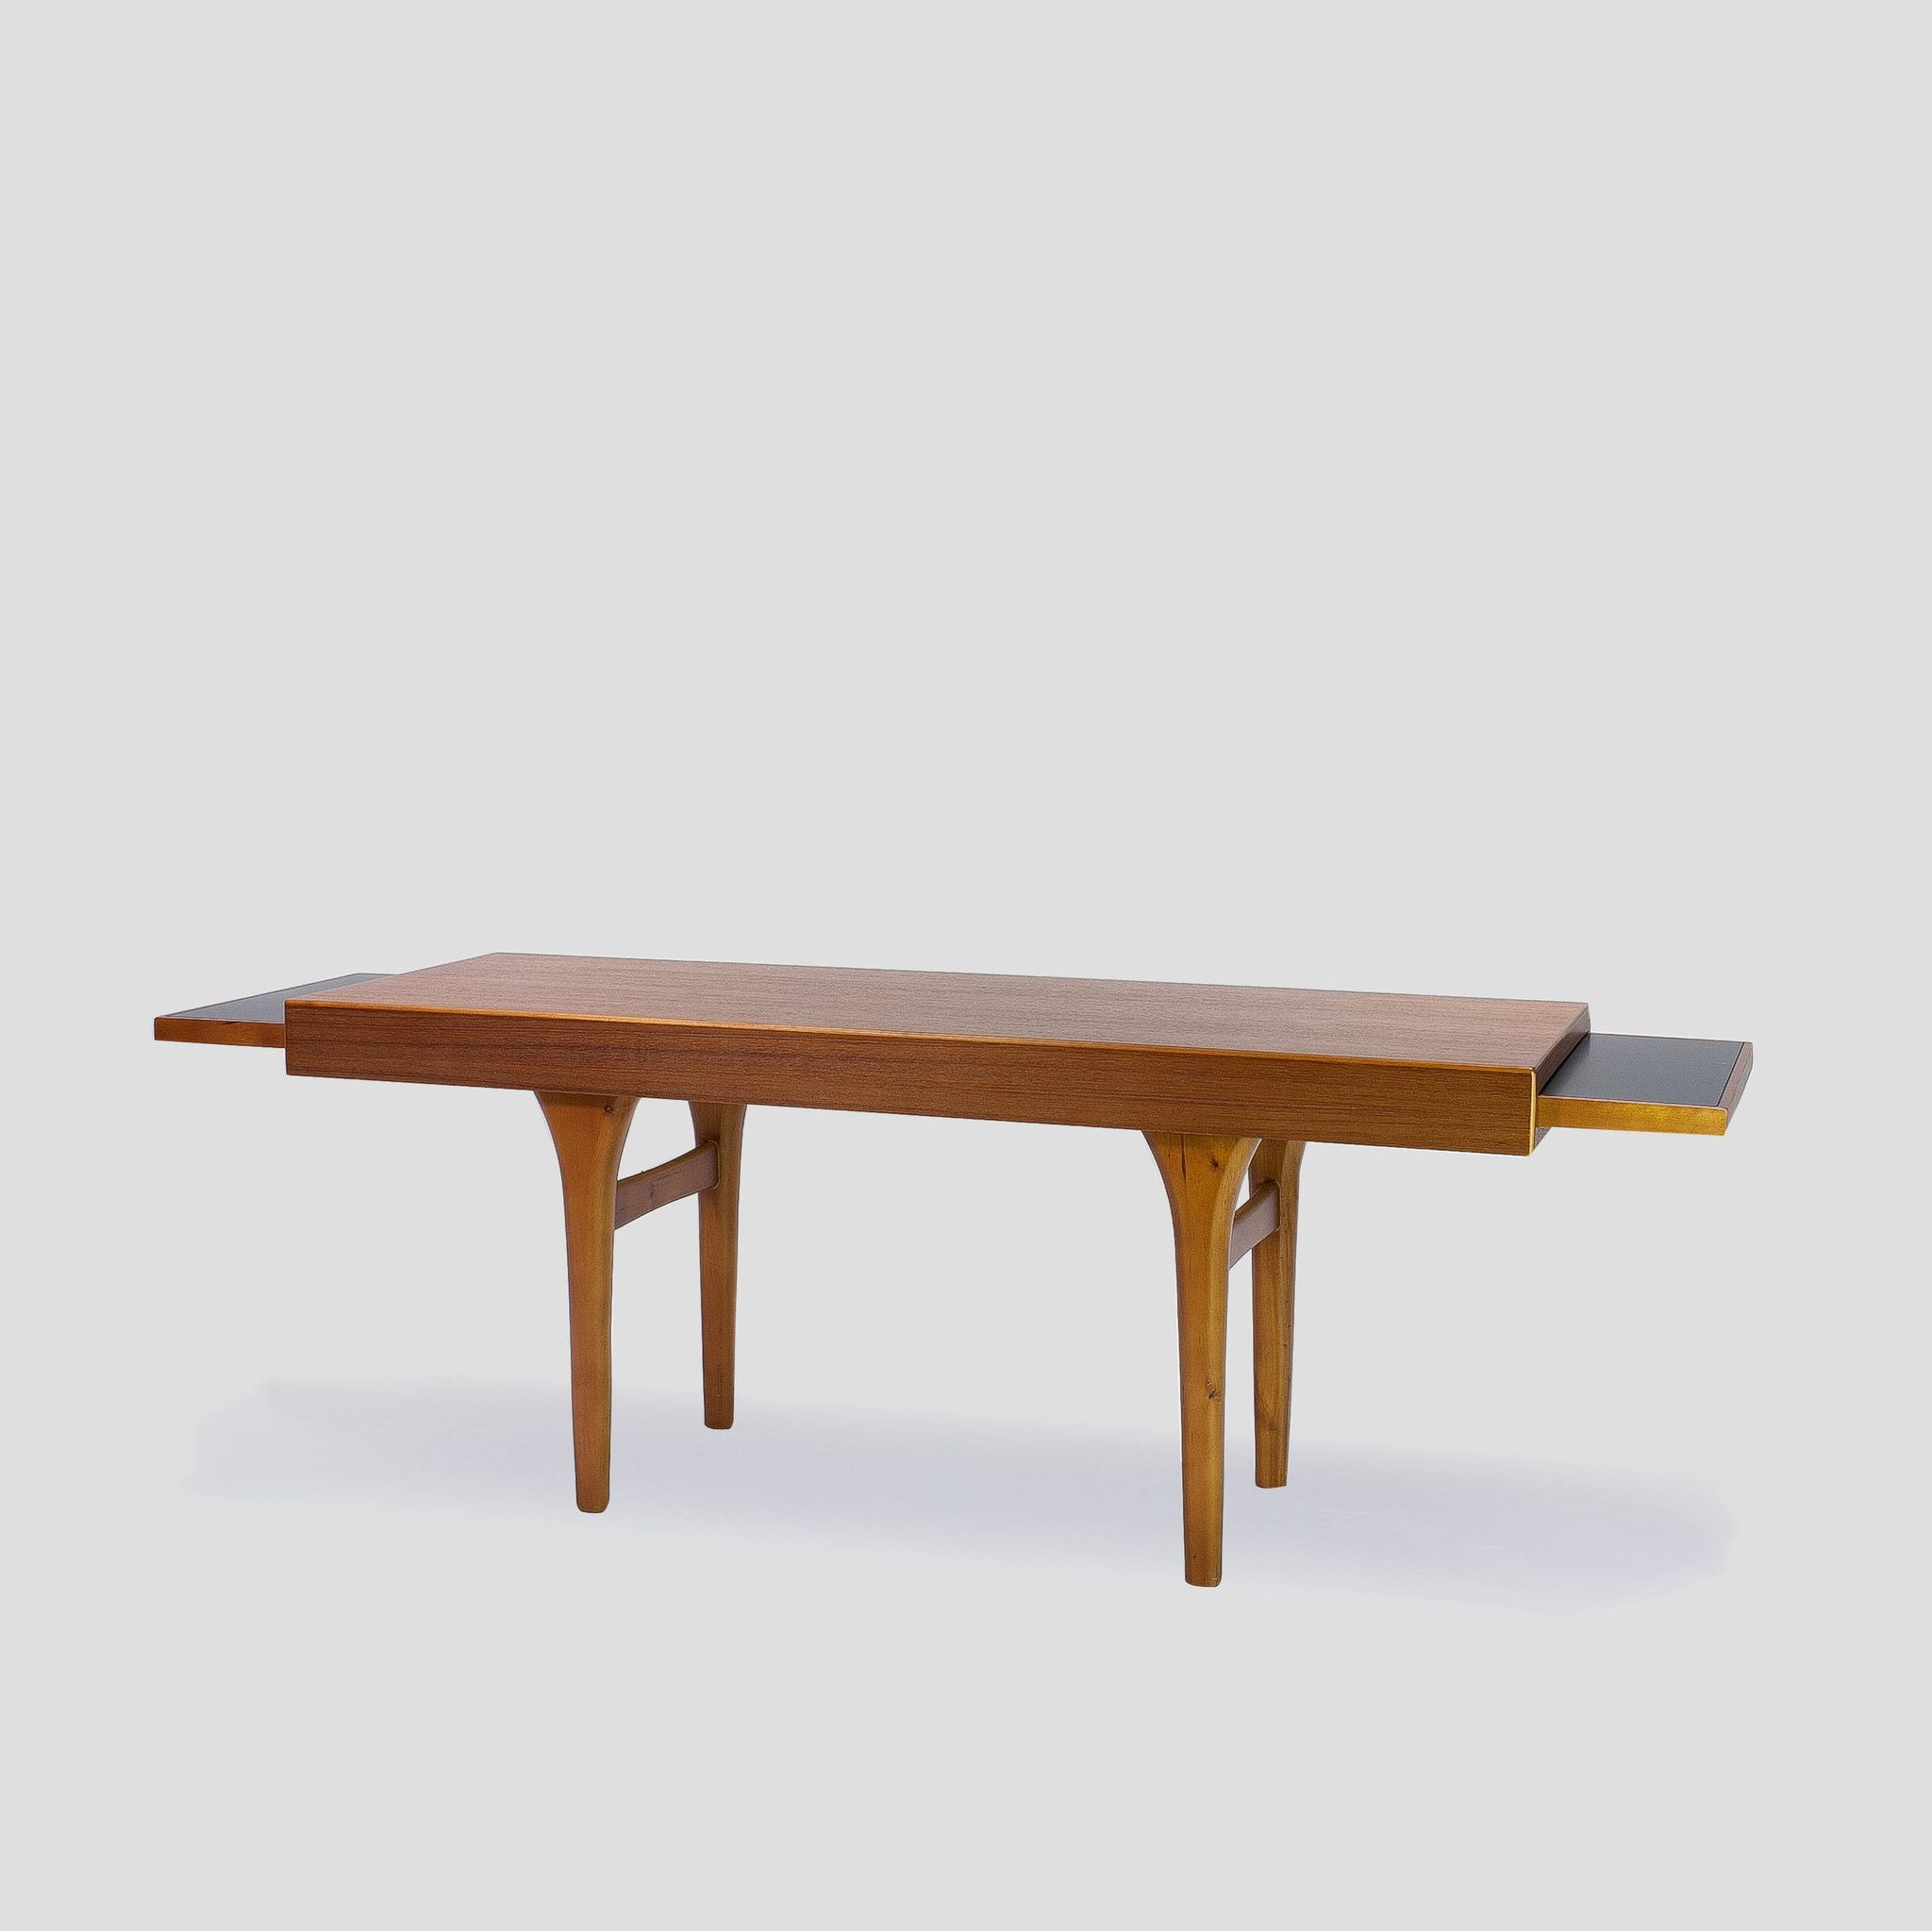 te table - Coffee Table - OUT OF STOCK